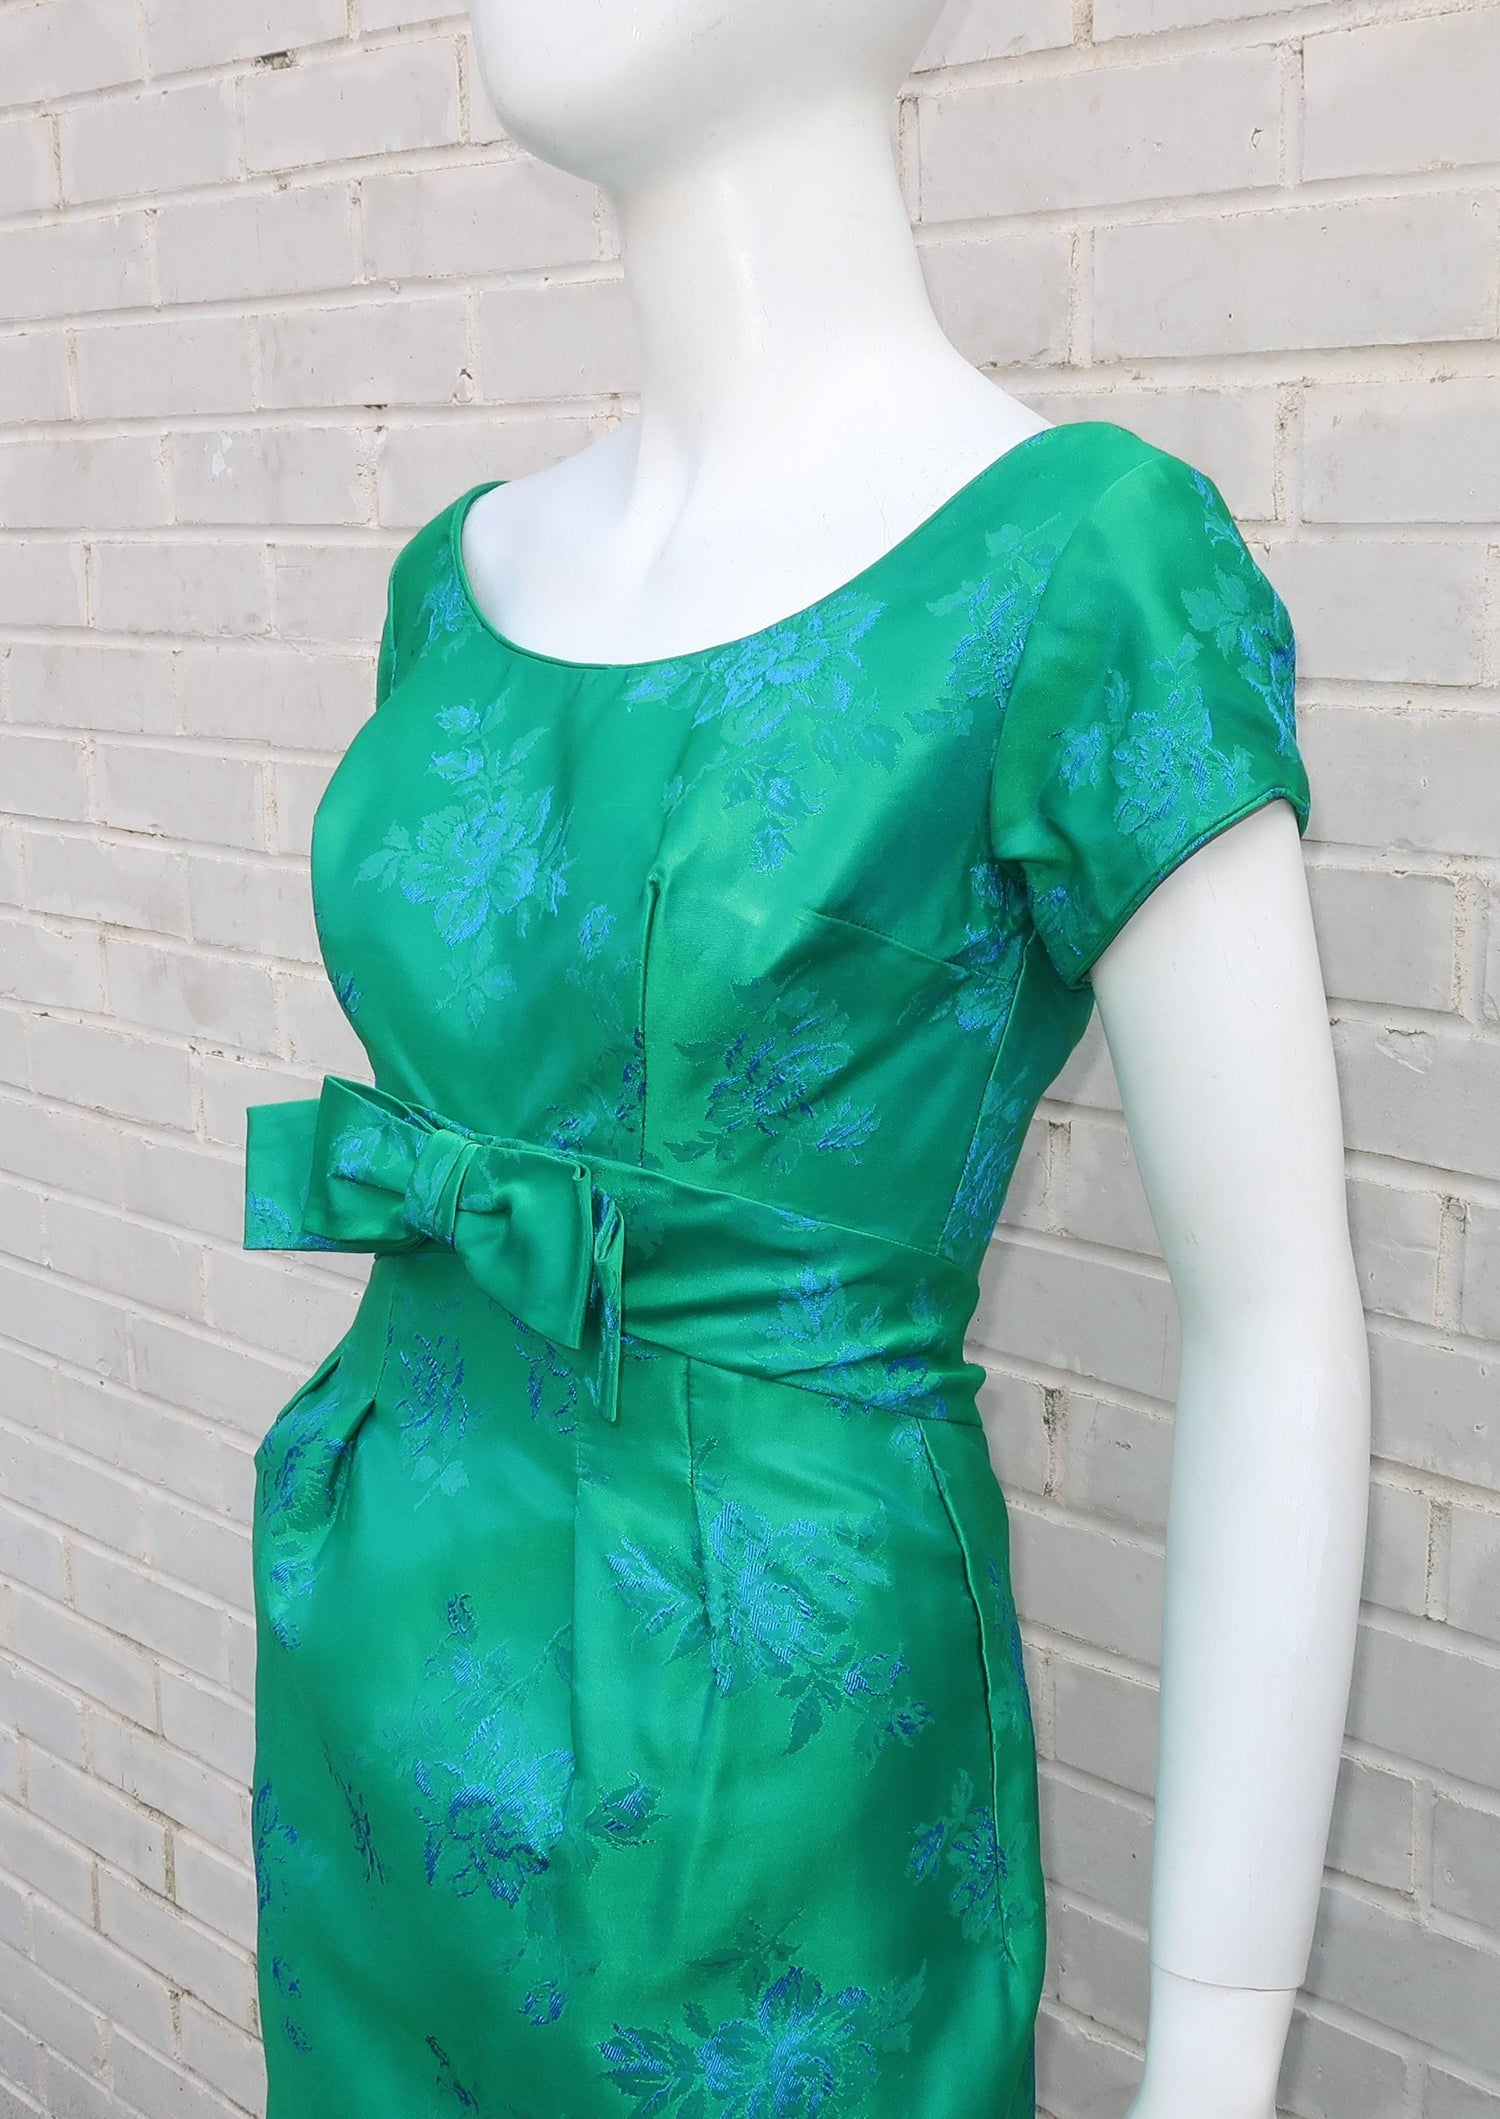 Emma Domb Blue and Green Party Dress, 1950s For Sale at 1stdibs